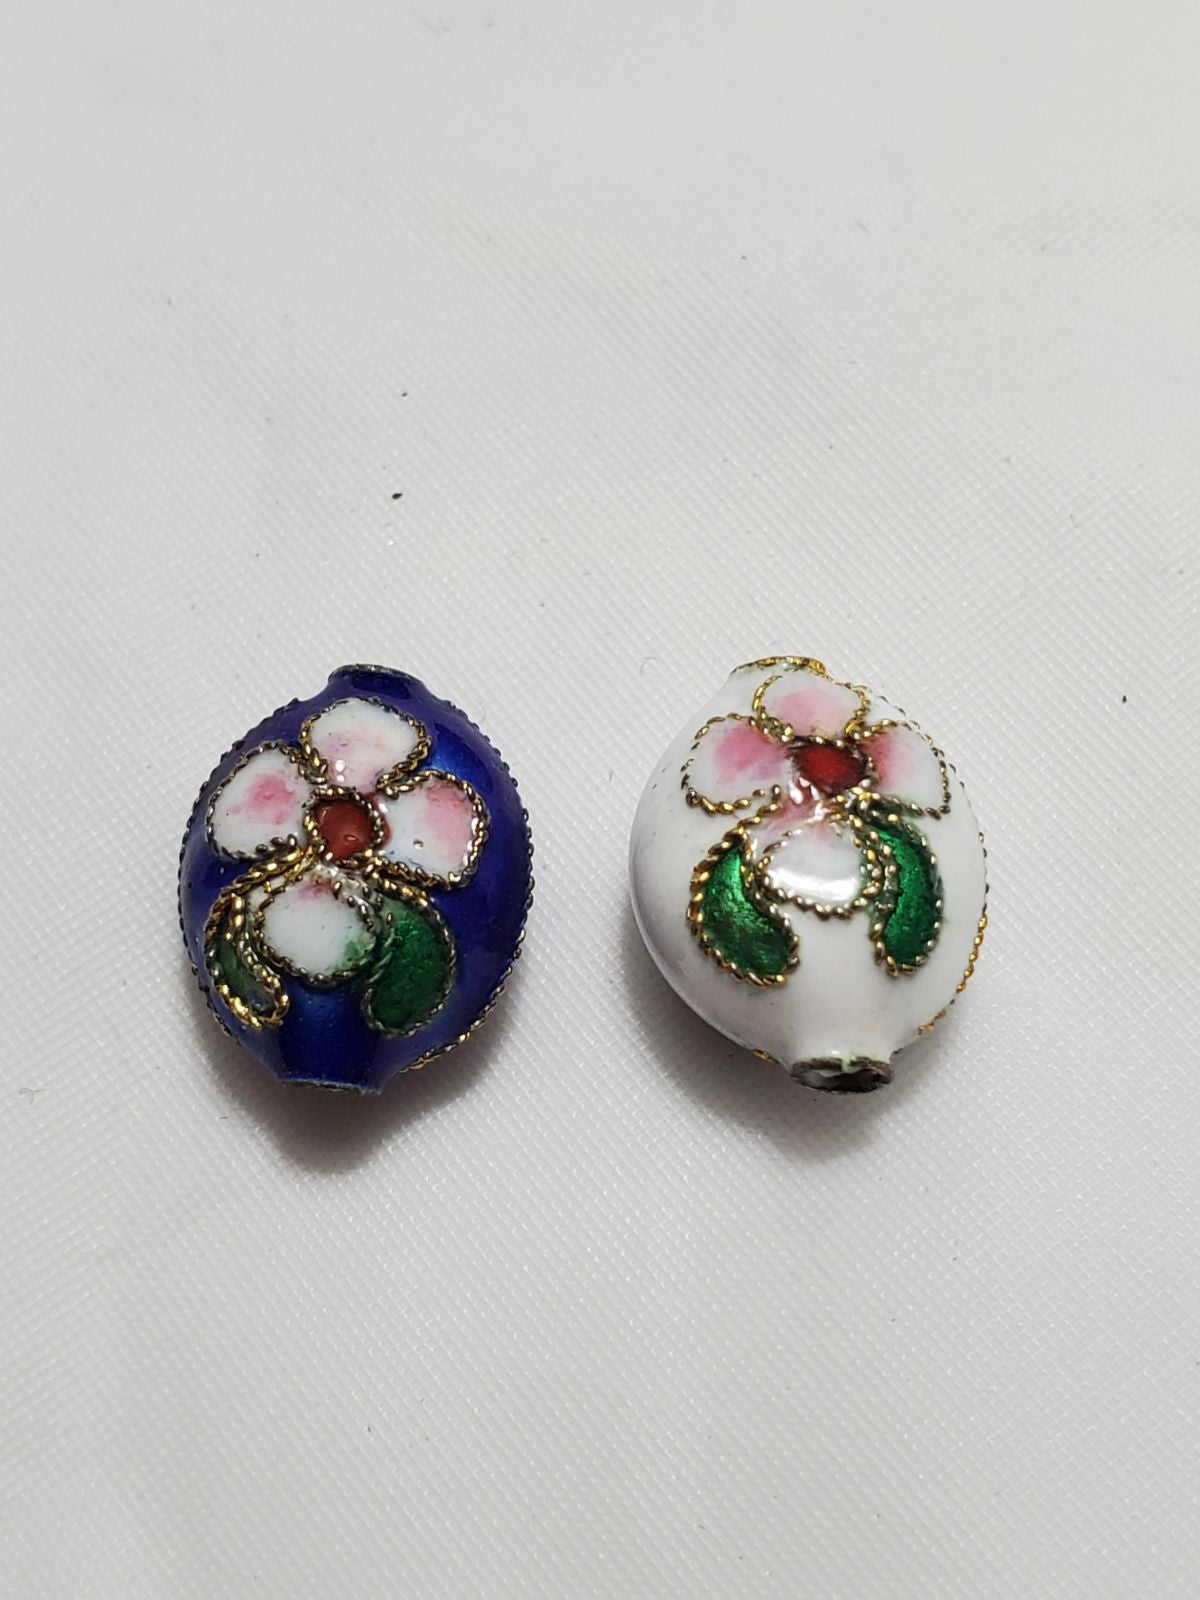 66 White And Blue Flower Rock Beads